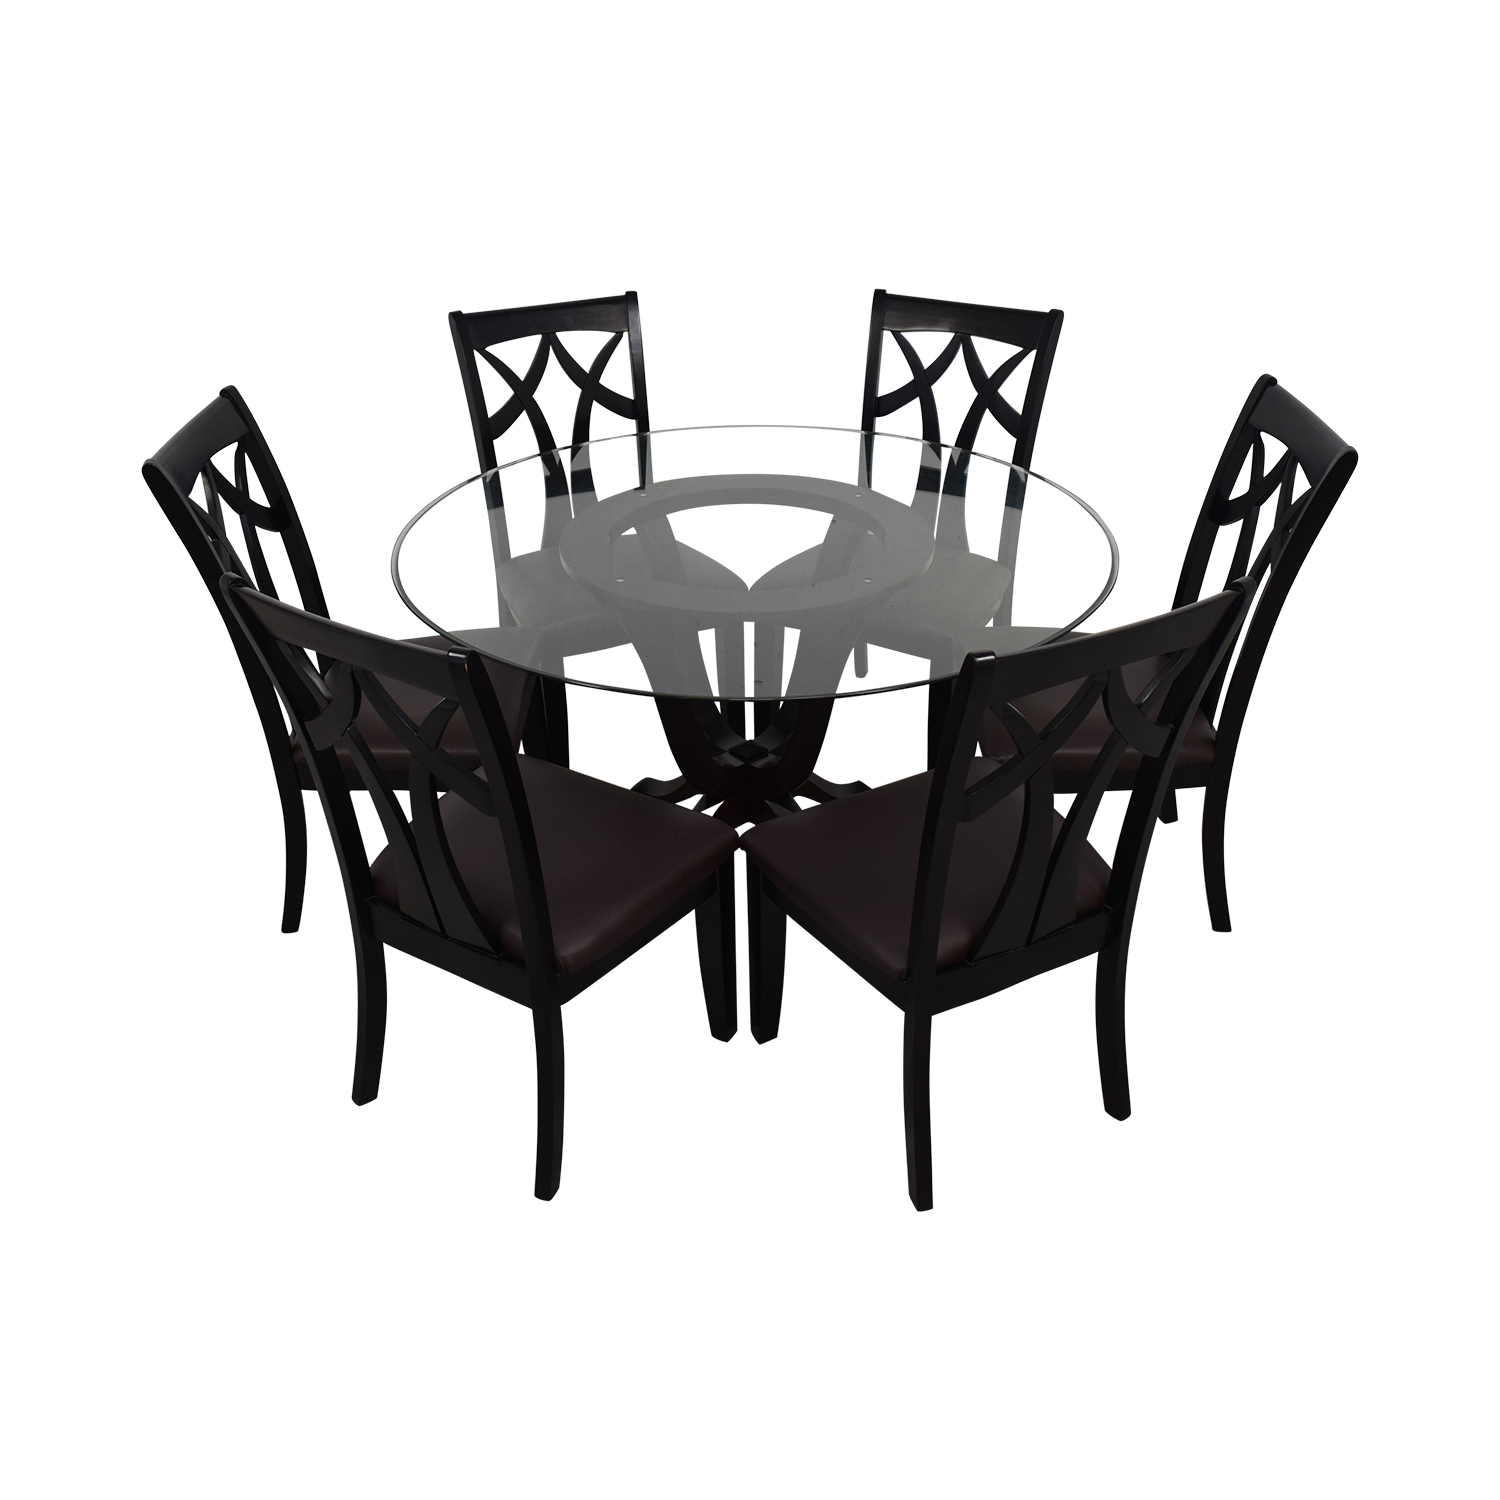 shop Raymour & Flanigan Contemporary Style Round Table With Six chairs Raymour & Flanigan